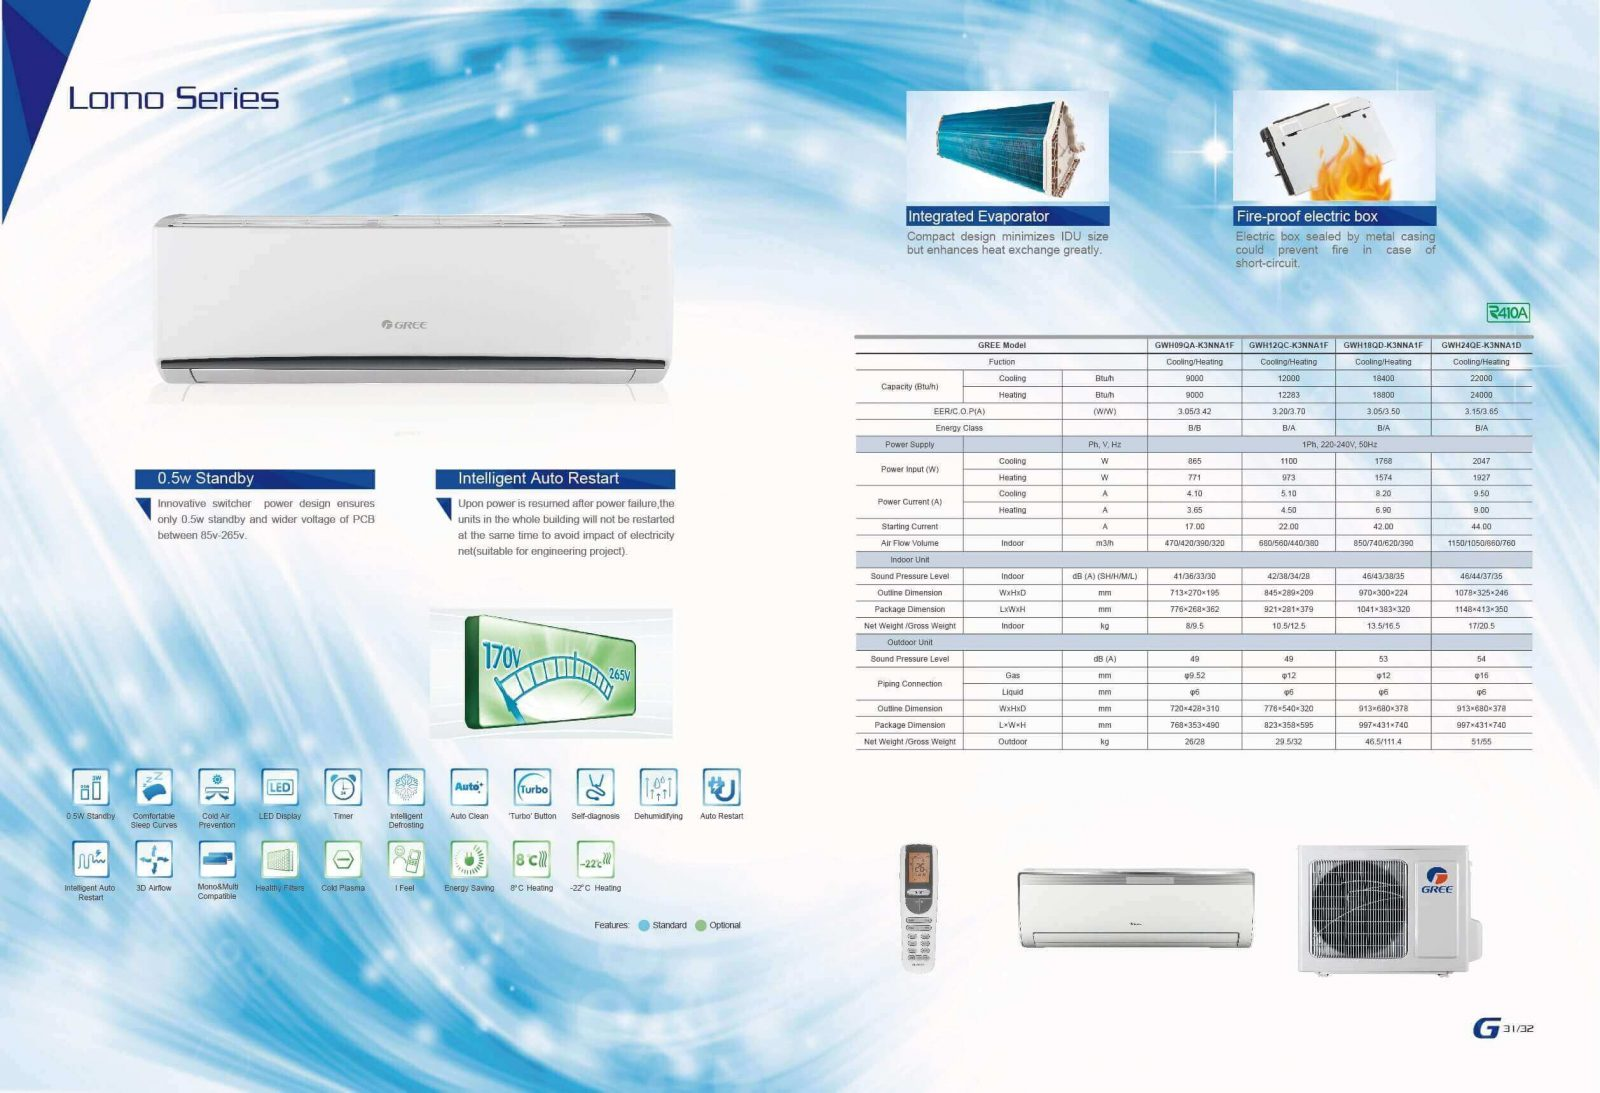 Gree Lomo Air Conditioners